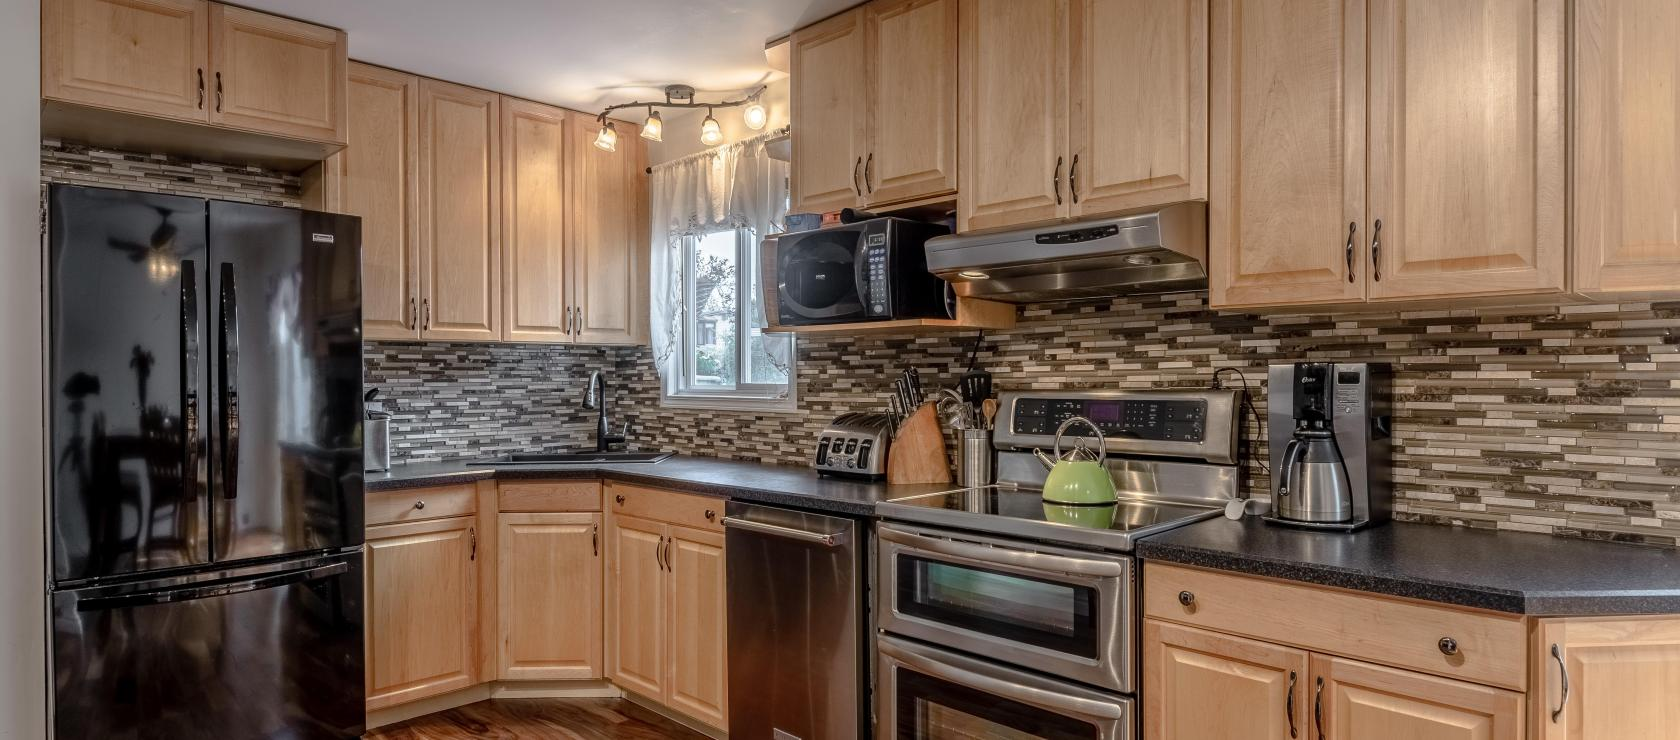 12 Taylor Road, Forrest Park, Yellowknife 2